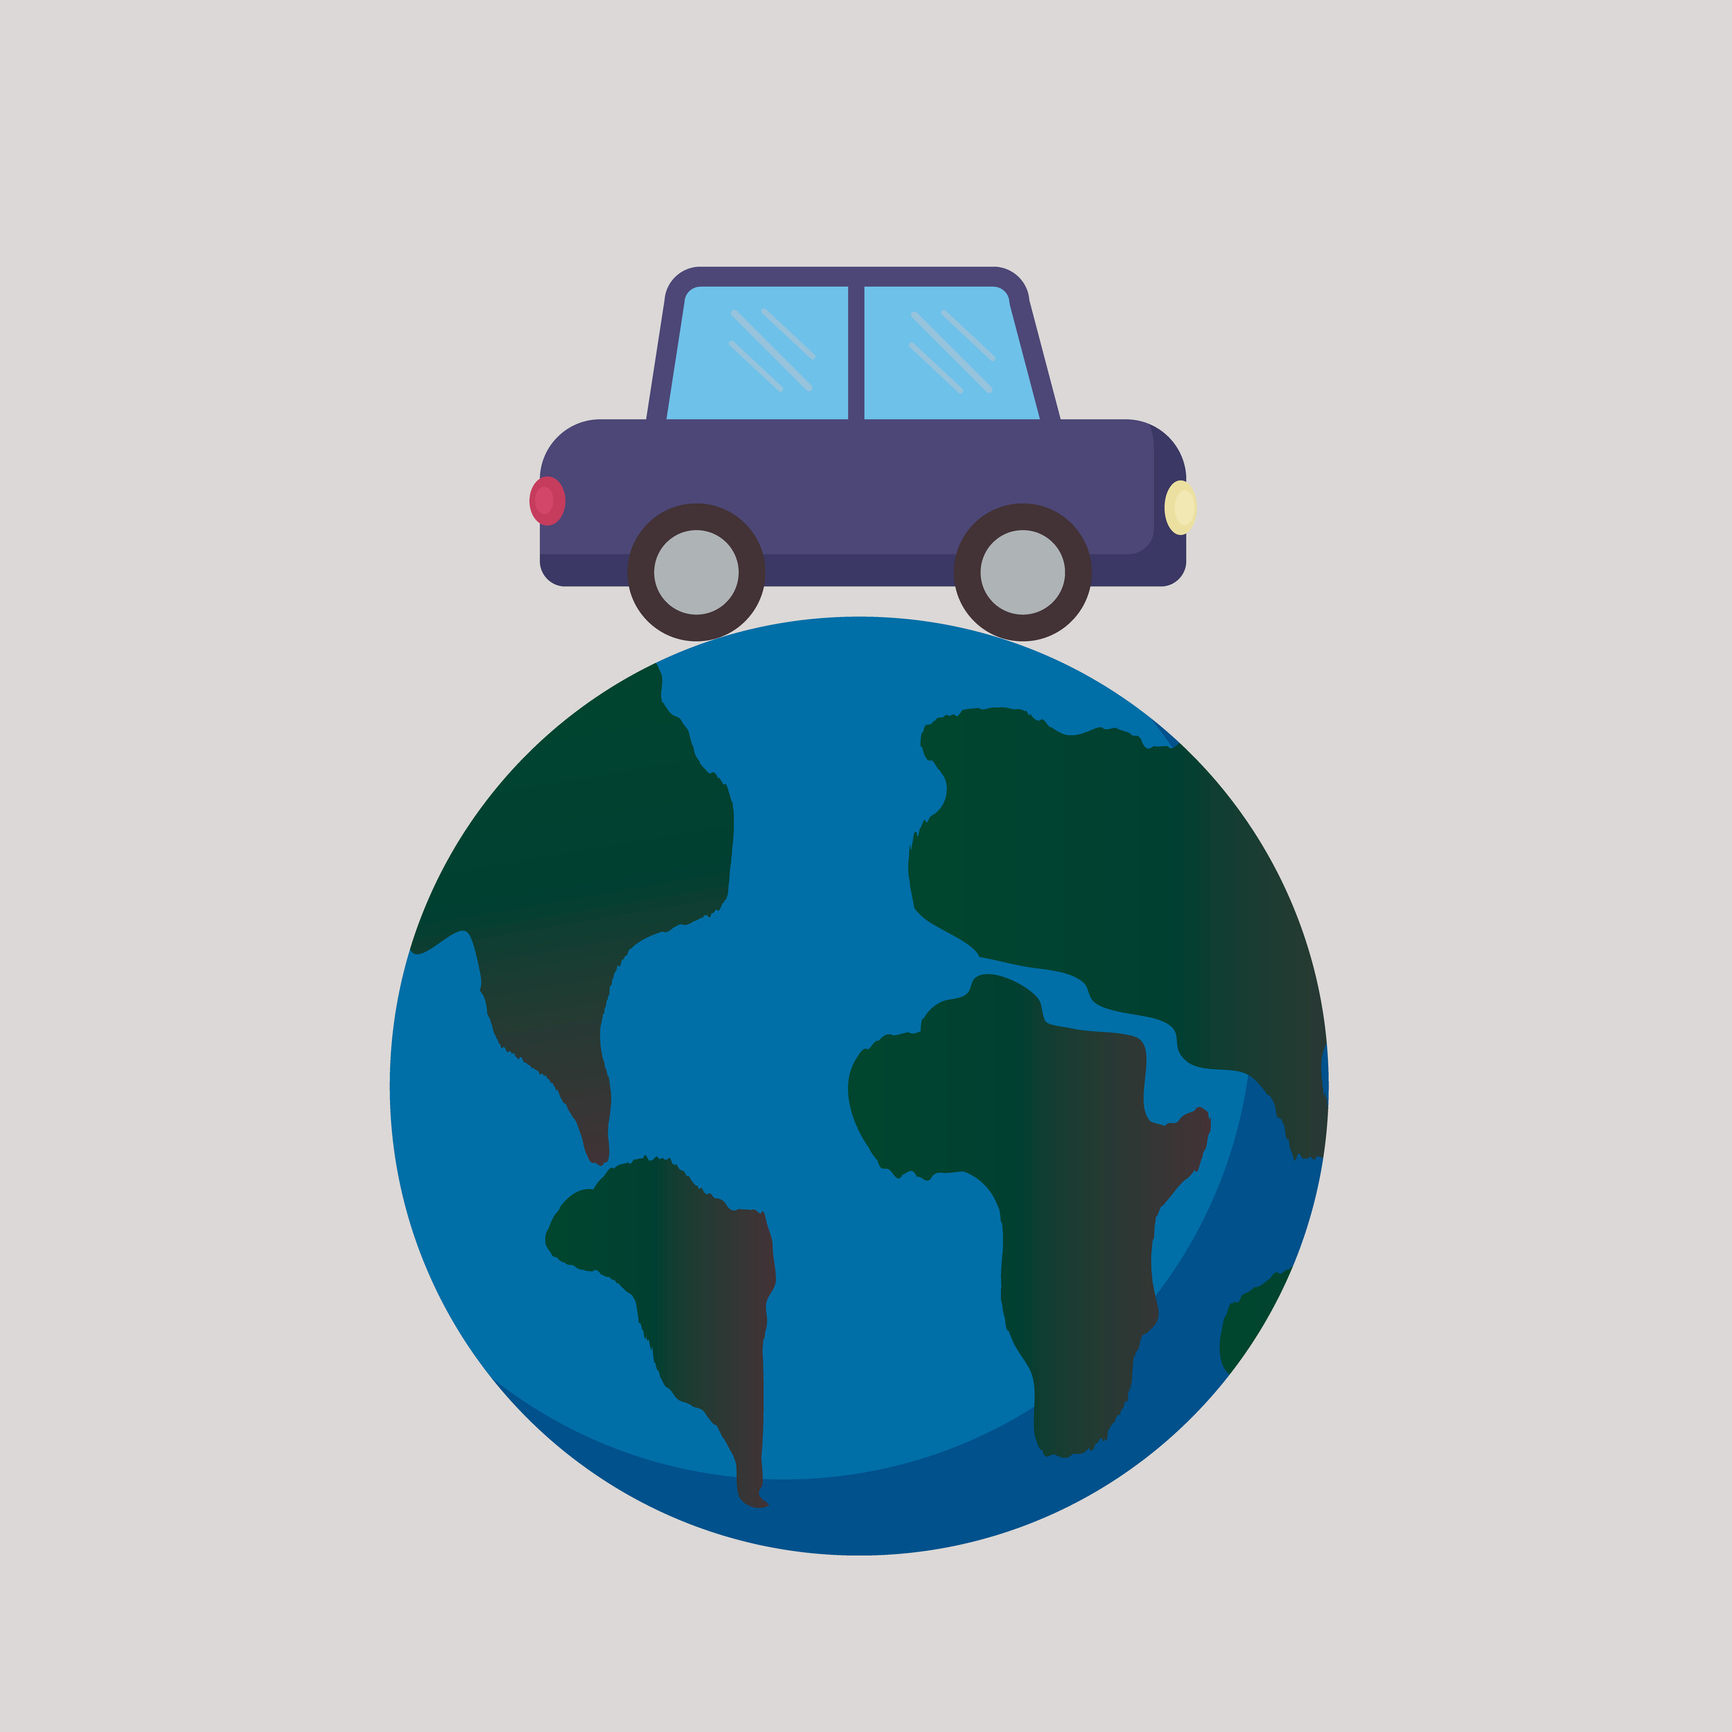 Travel-around-the-world.-Auto-travel-concept.-Road-trip.-Vacation-vector-illustration.-Design-template-for-your-artworks.-1063508078_1735x1735.jpeg